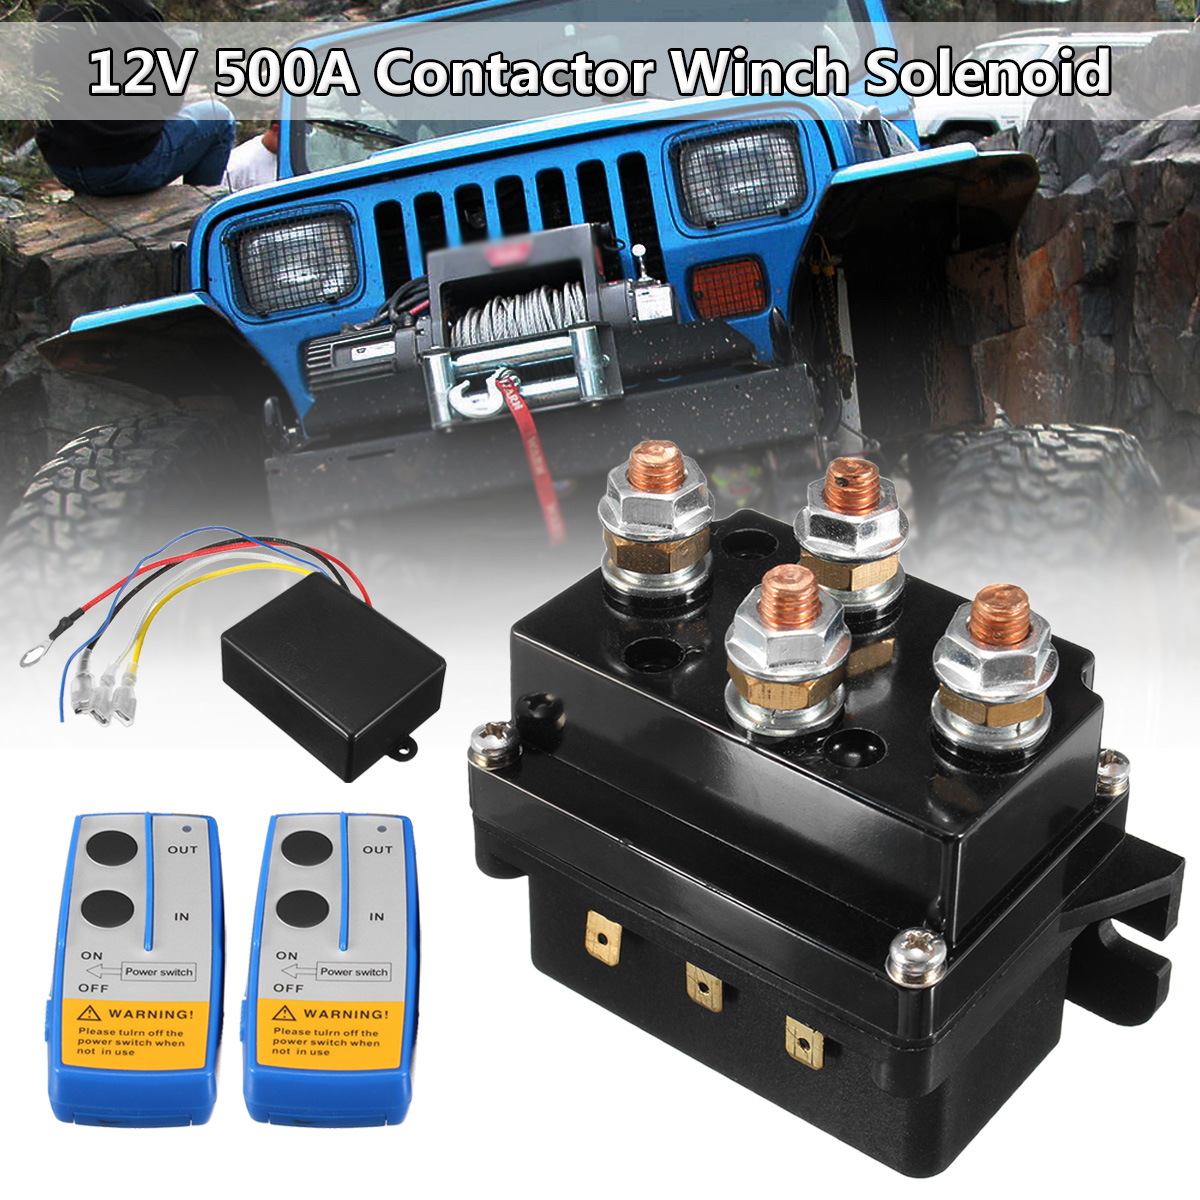 12V 500Amp HD Contactor Winch Control Solenoid Twin Wireless Remote Recovery 4x4